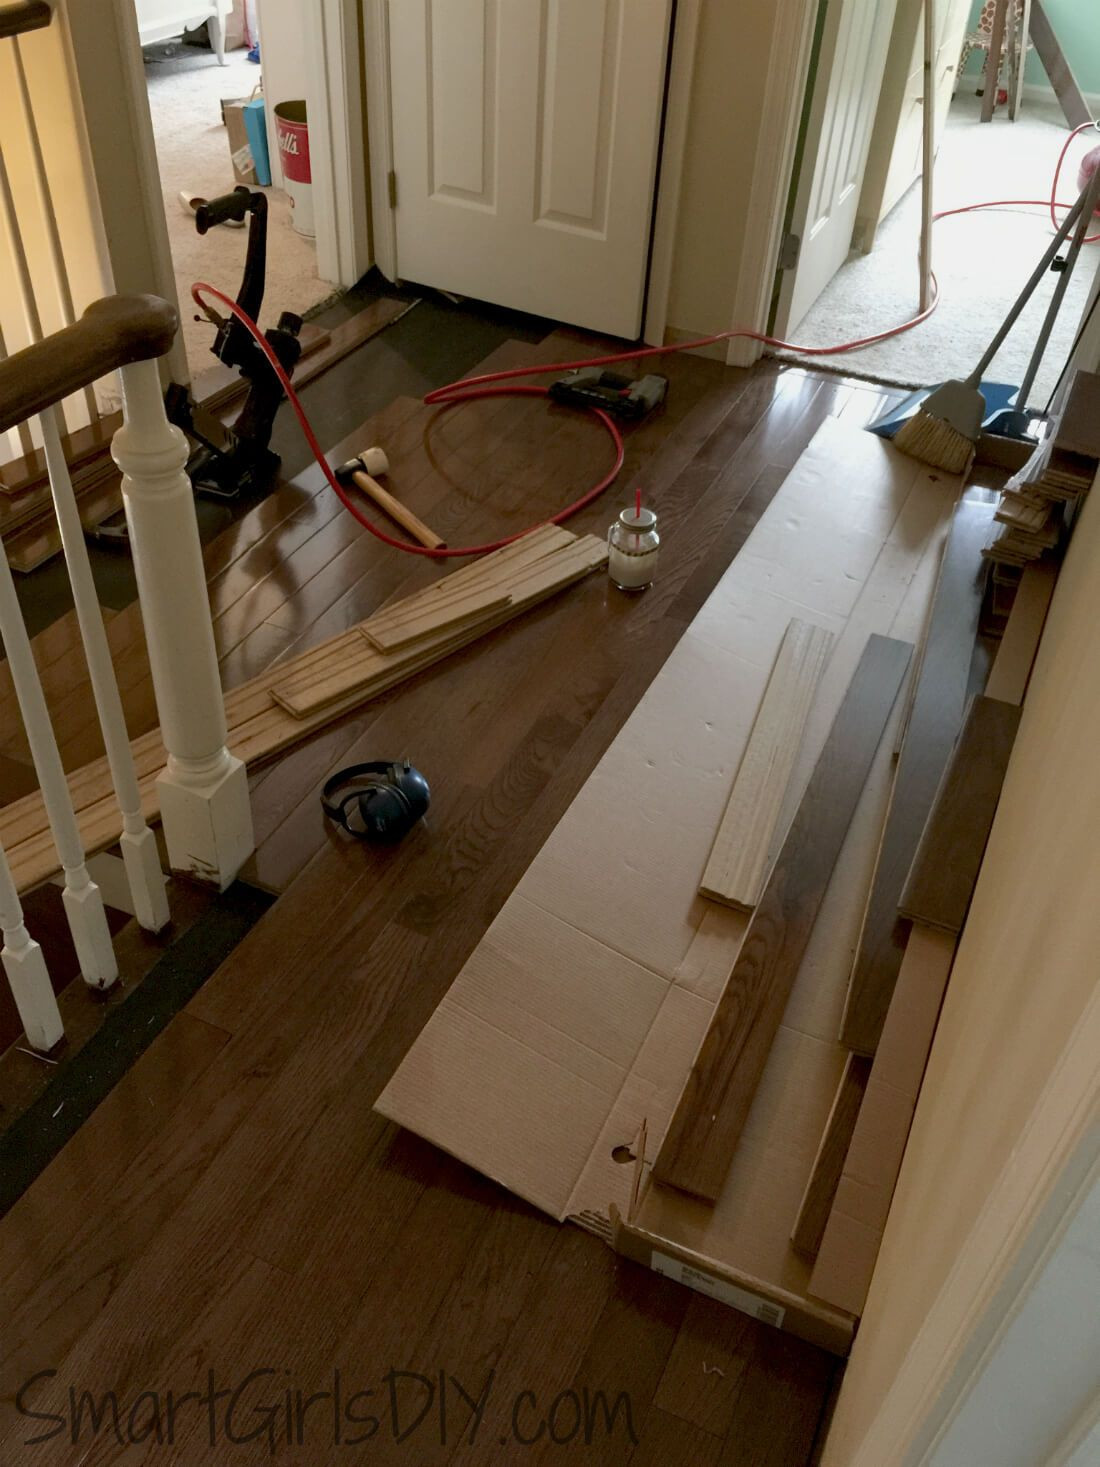 30 Fantastic How to Install Hardwood Floor Bullnose 2021 free download how to install hardwood floor bullnose of upstairs hallway 1 installing hardwood floors pertaining to how to install hardwood floor all by yourself